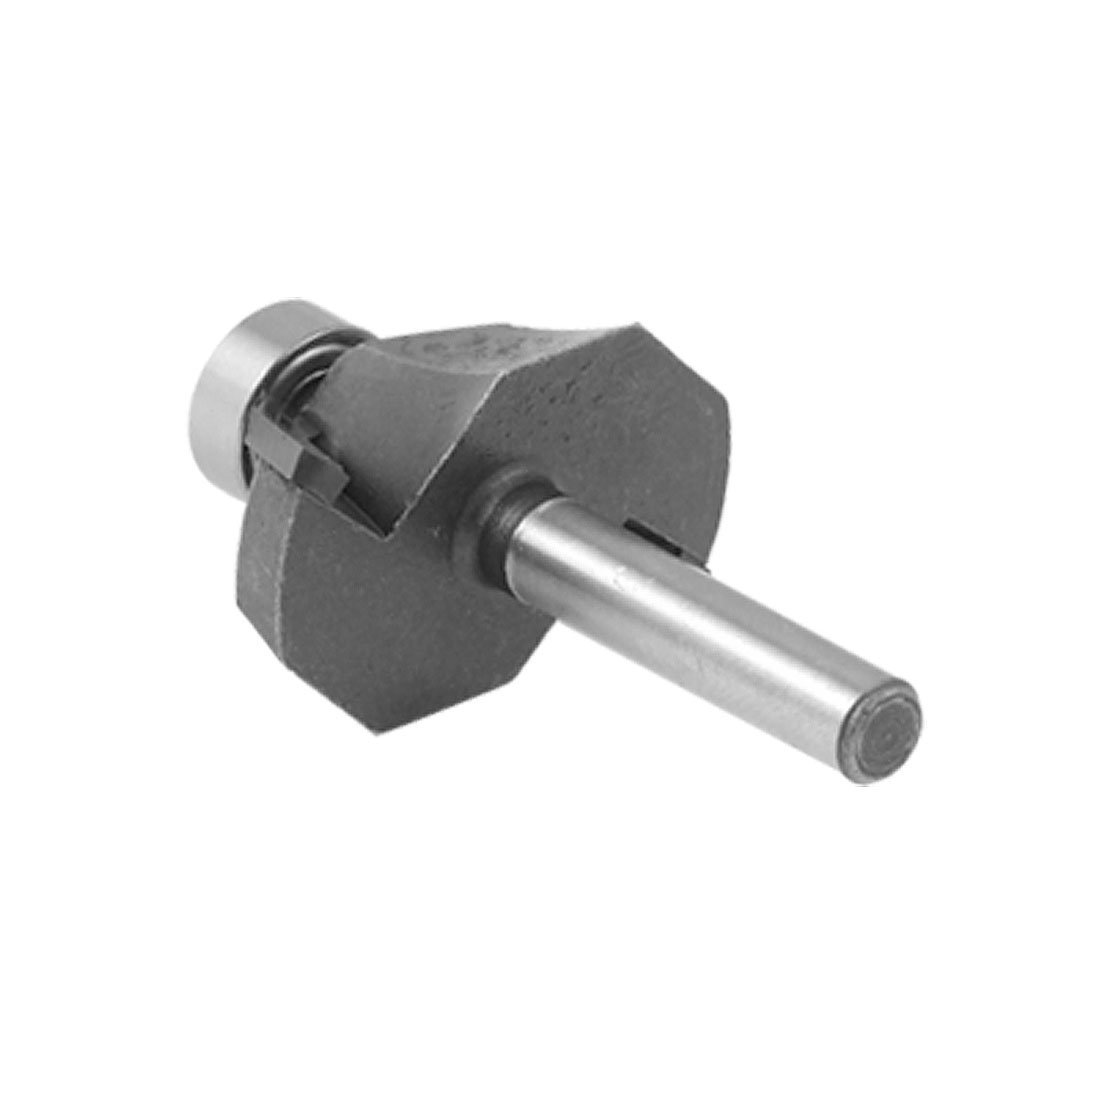 uxcell 5//8 inches Cut Length 1//4 inches Shank 45 DegreeChamfer Router Bit